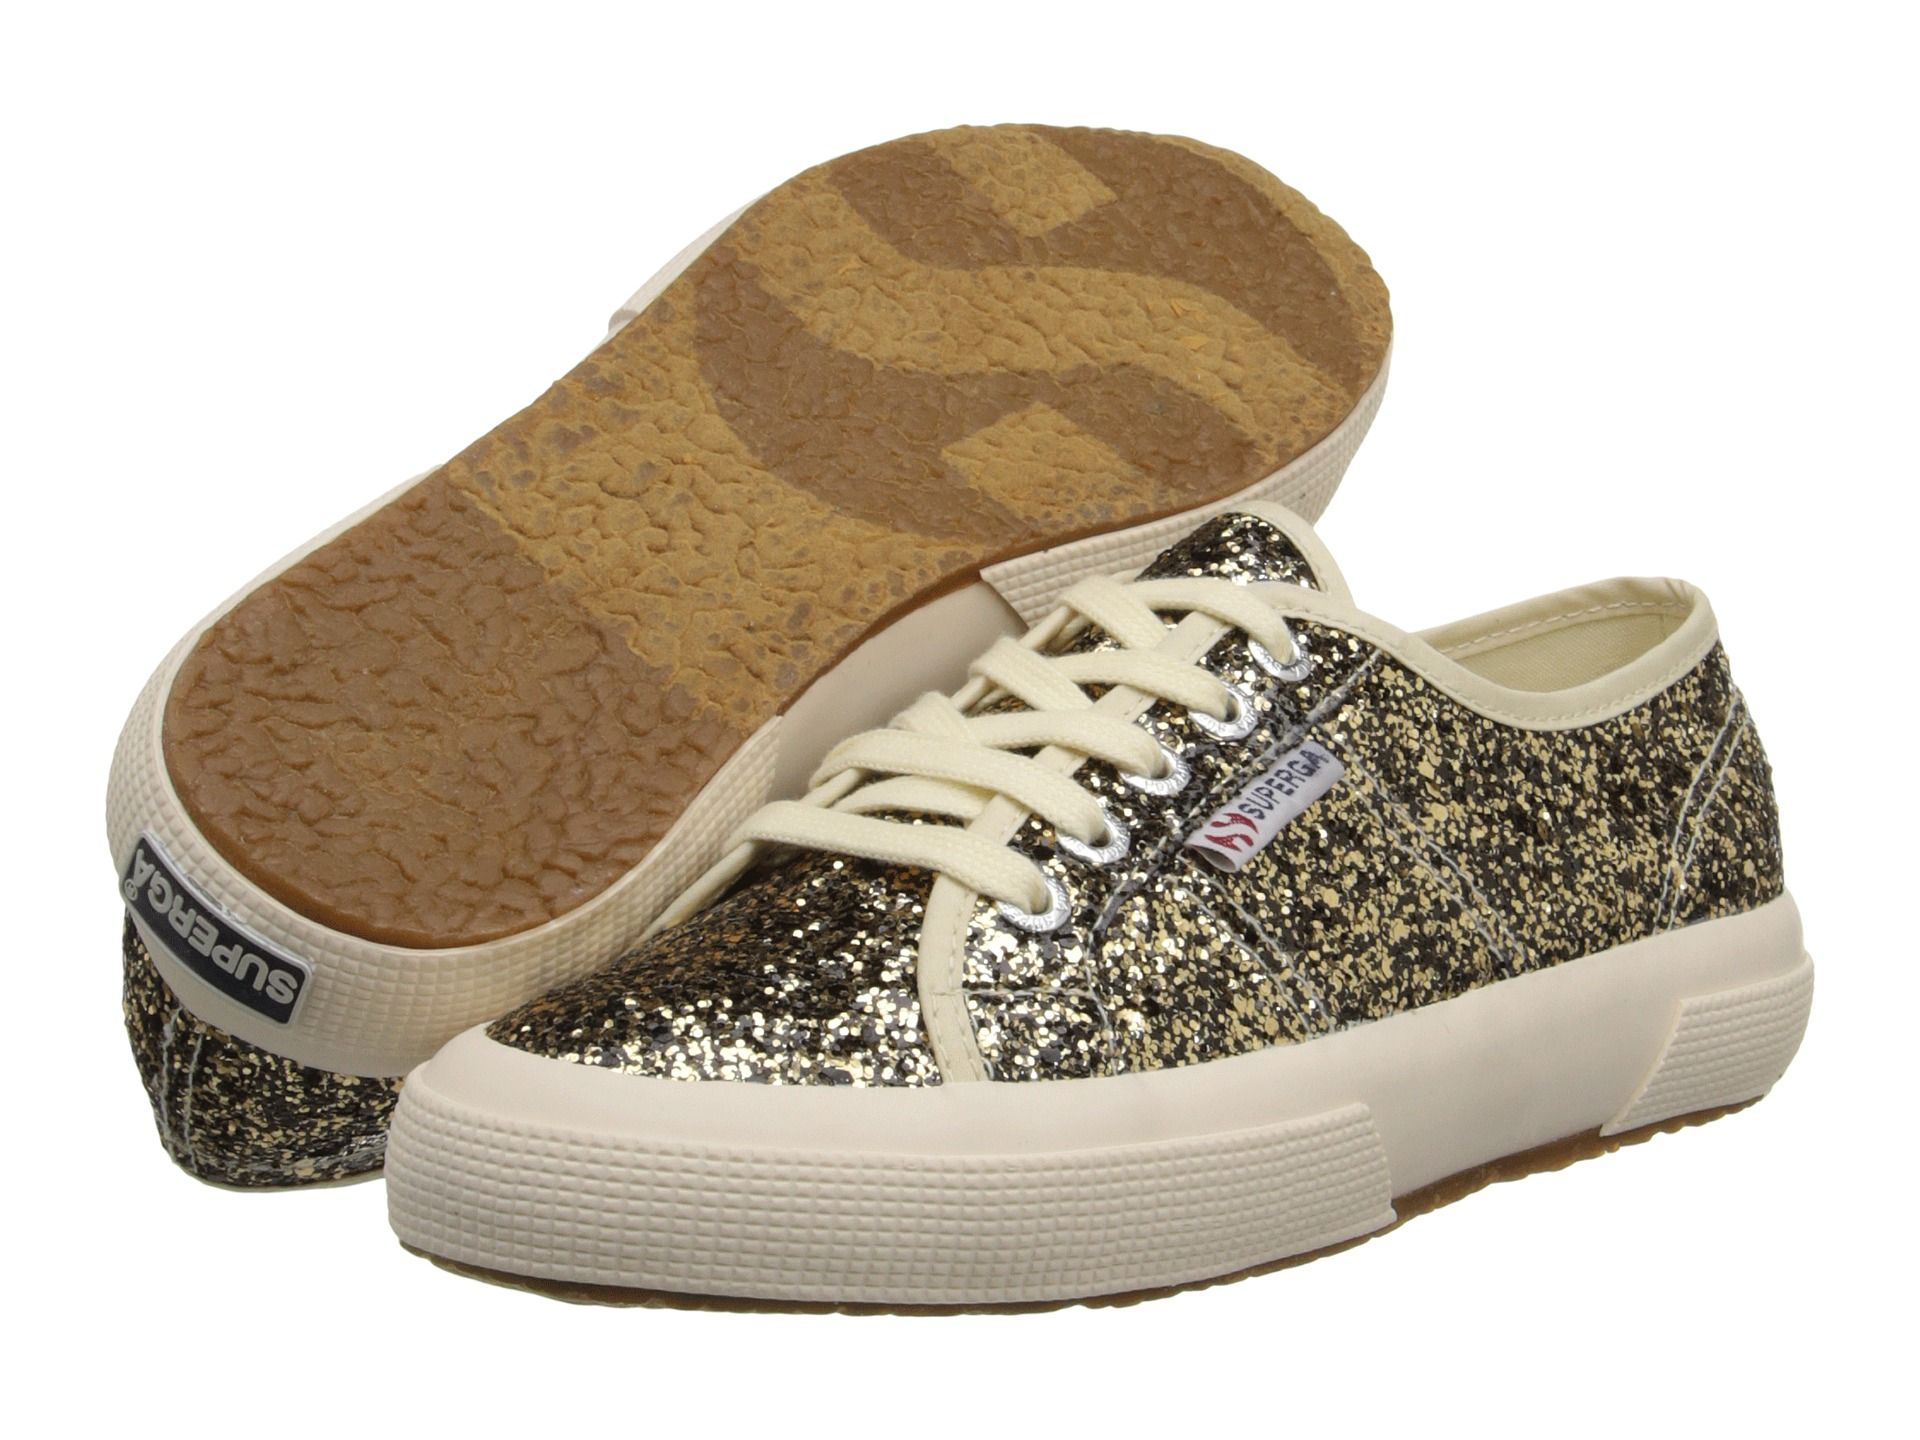 caff47969 11 Pairs of Glittery Shoes That Are Cool, Not Cheesy   StyleCaster